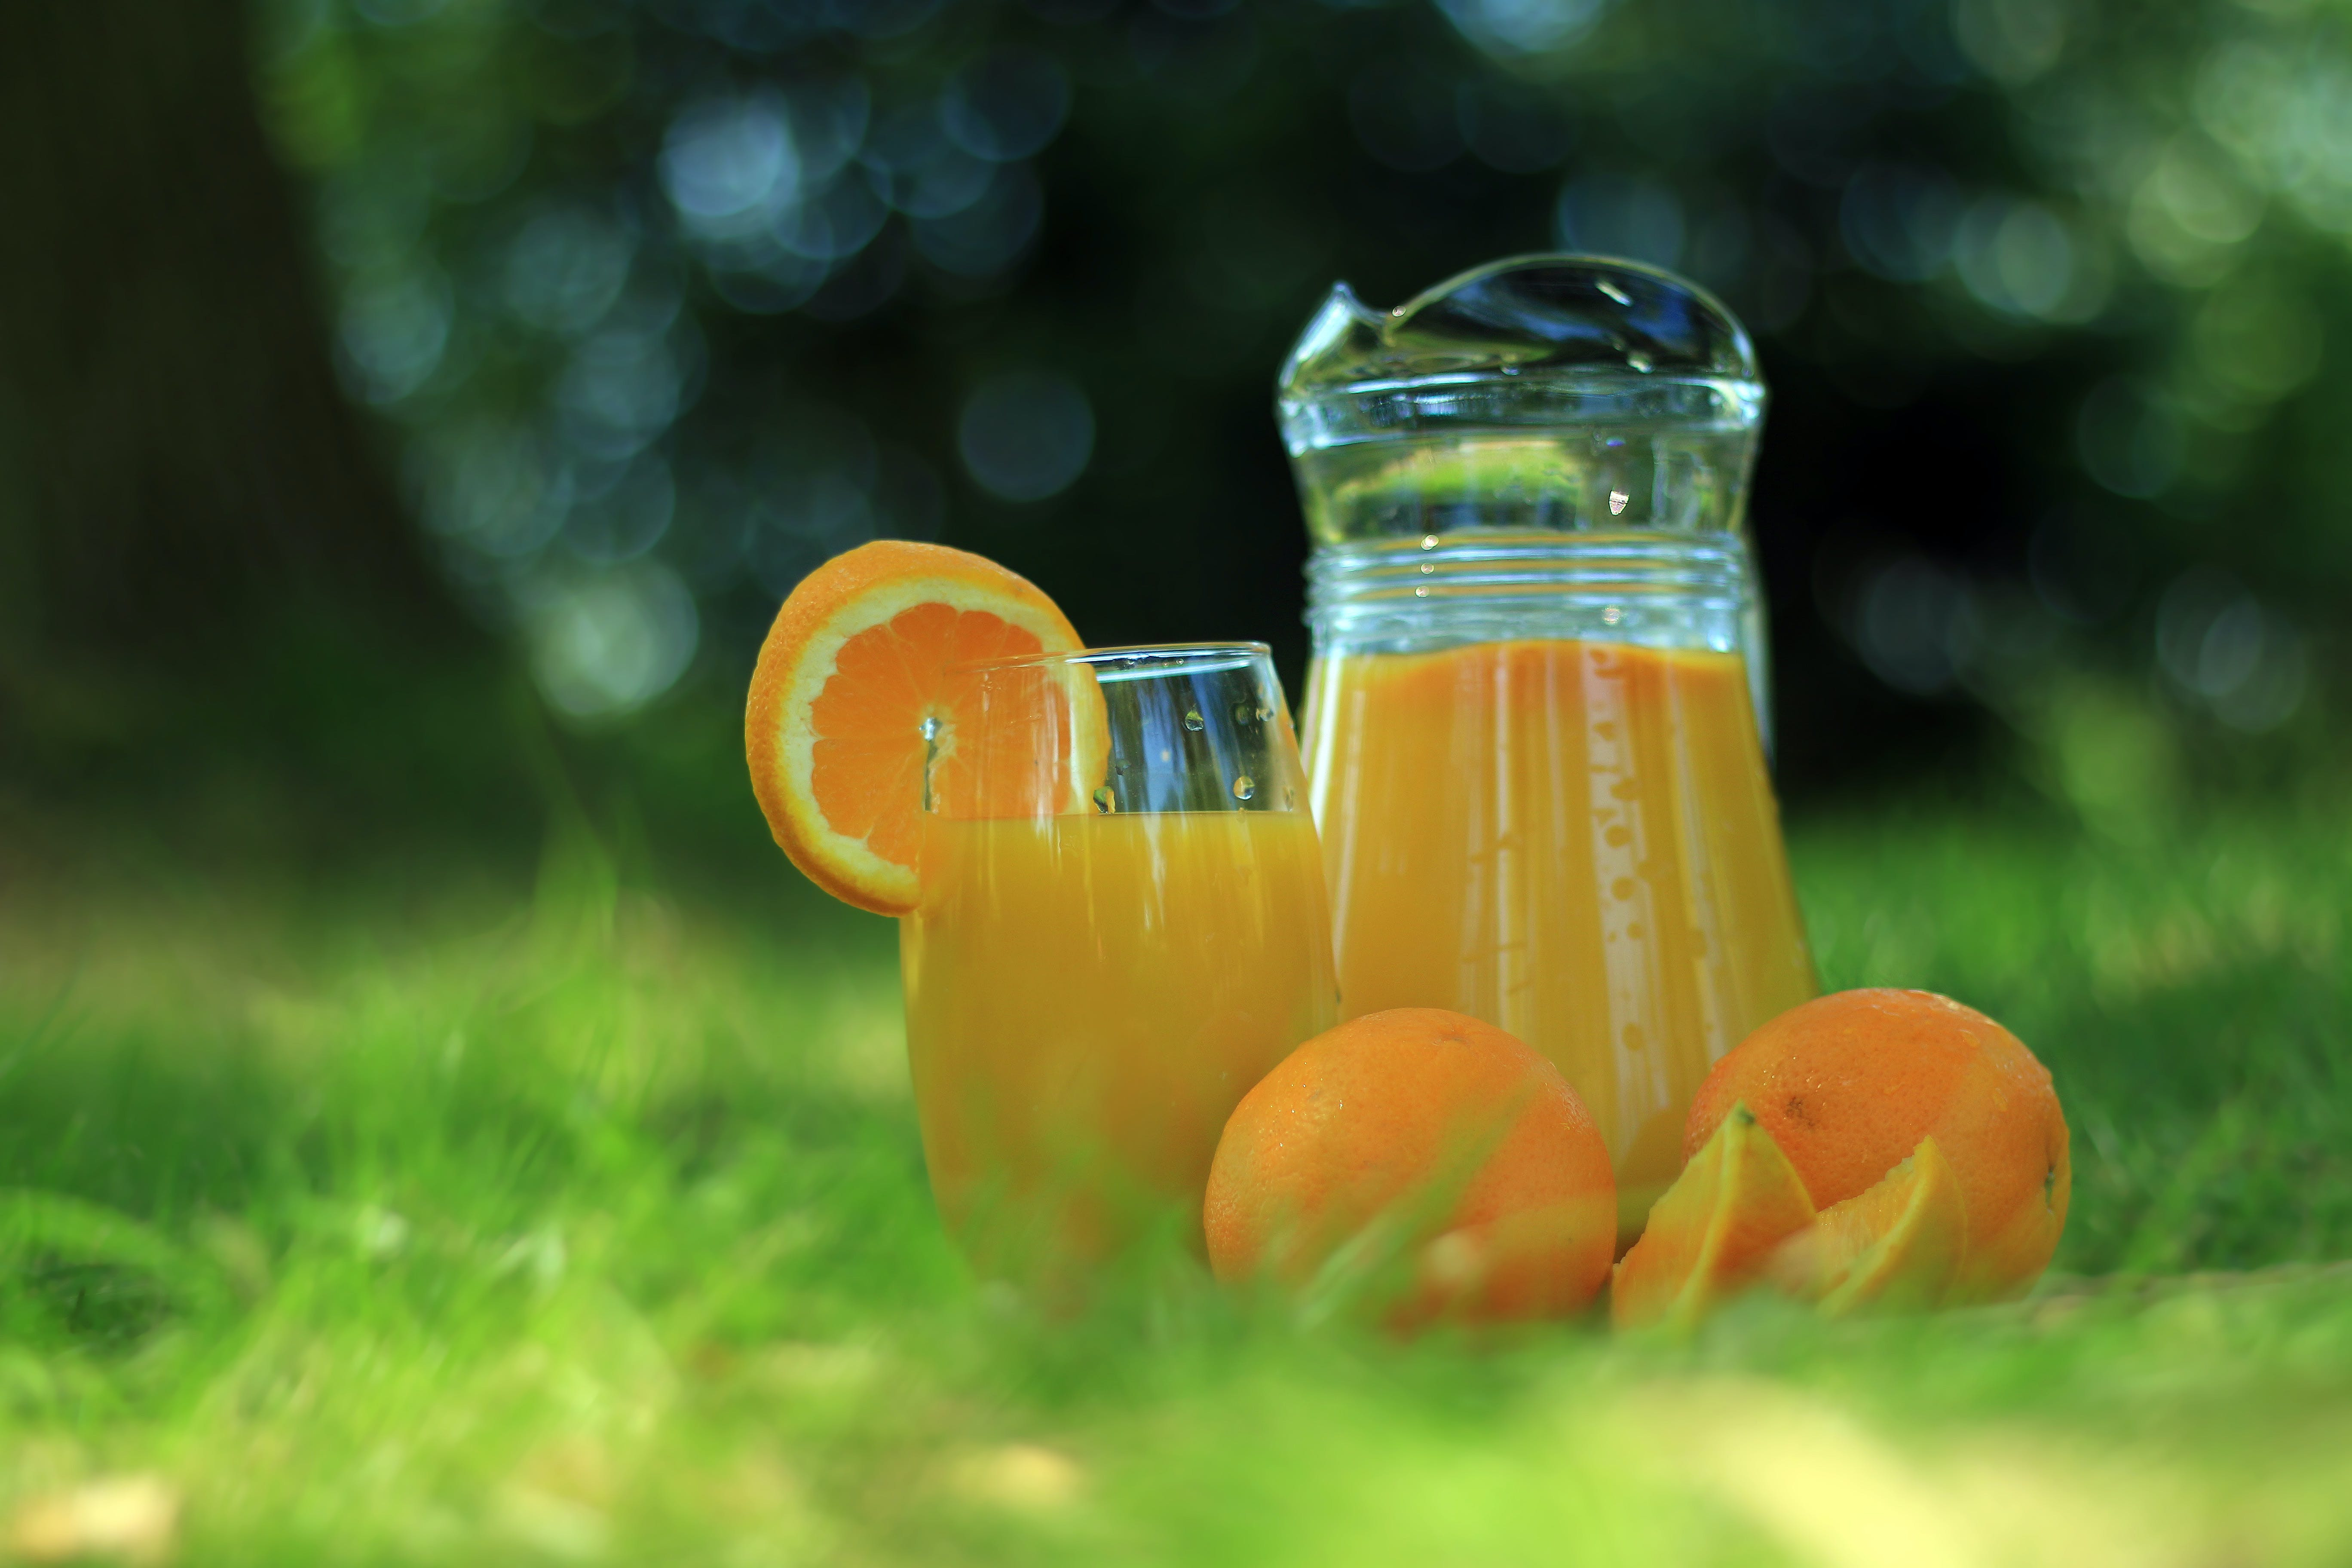 Clear Glass Cup Filled With Orange Juice